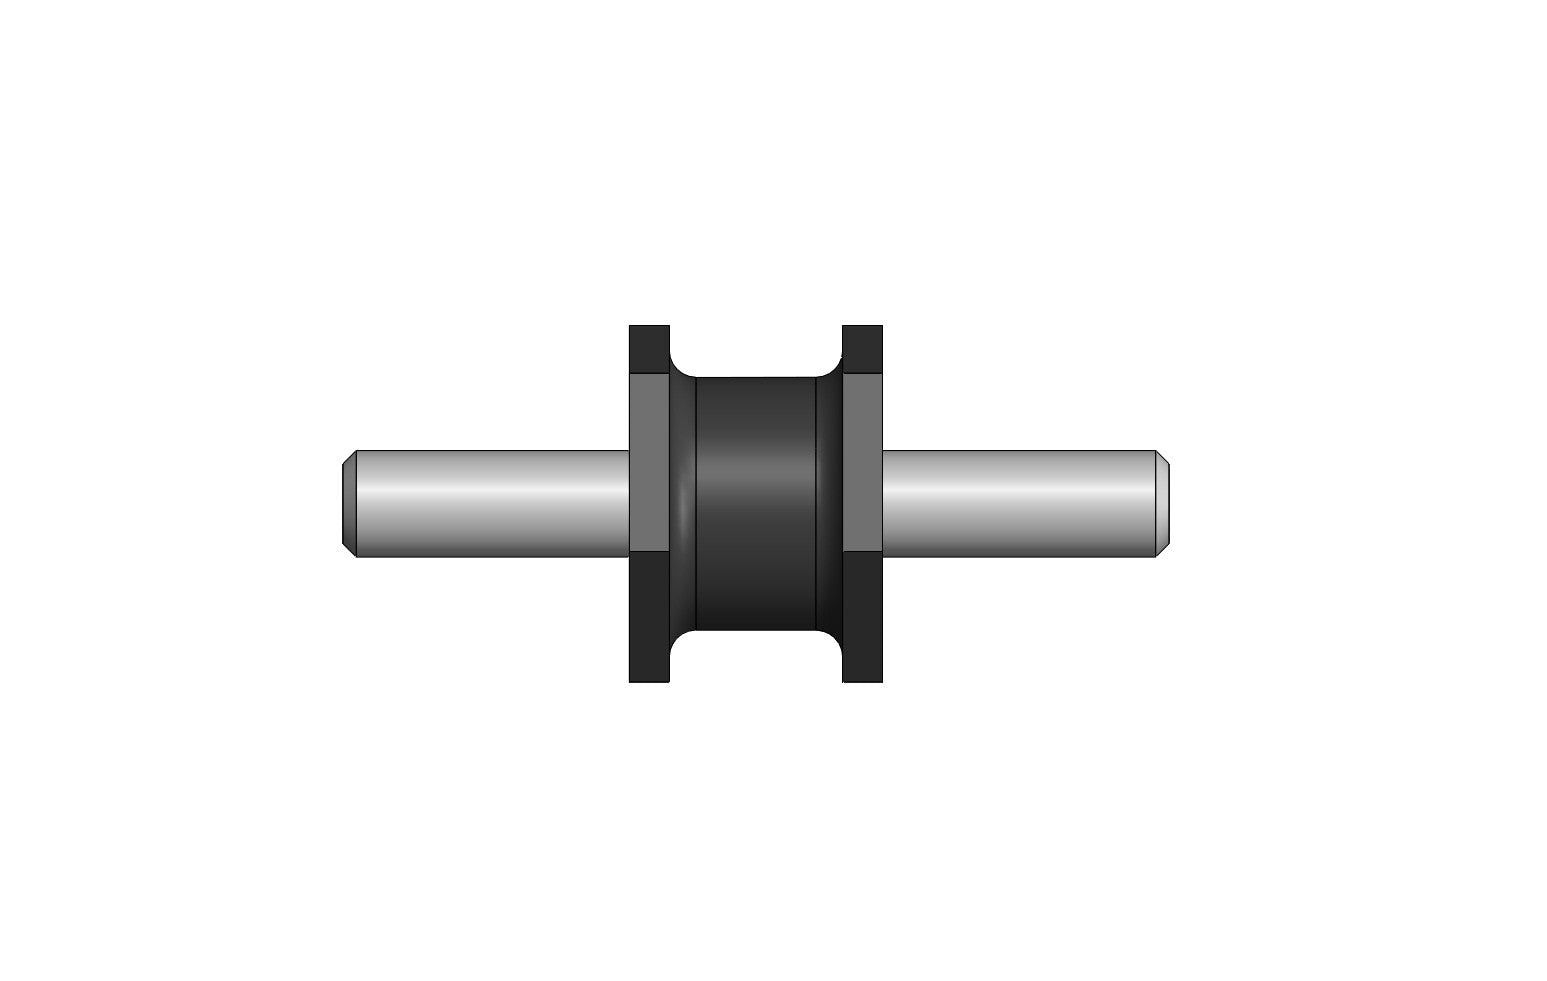 TB13051A ANTI-VIBRATION BOLT - King TB4 Spare Part